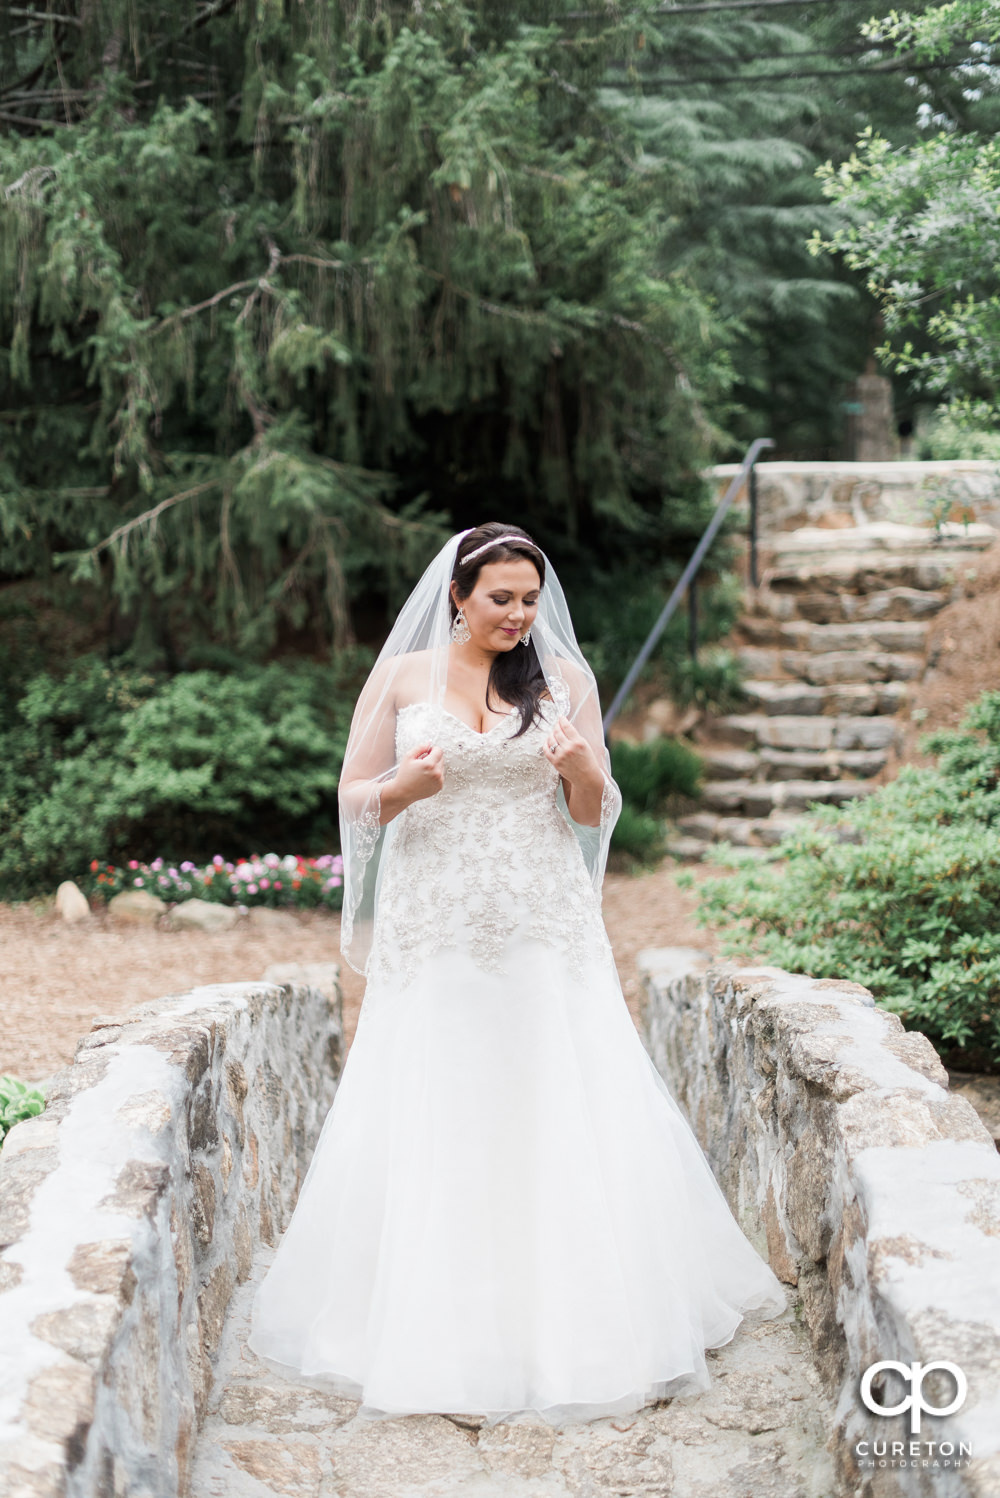 Bride holding her veil on the stone bridge at the rock quarry in Greenville.